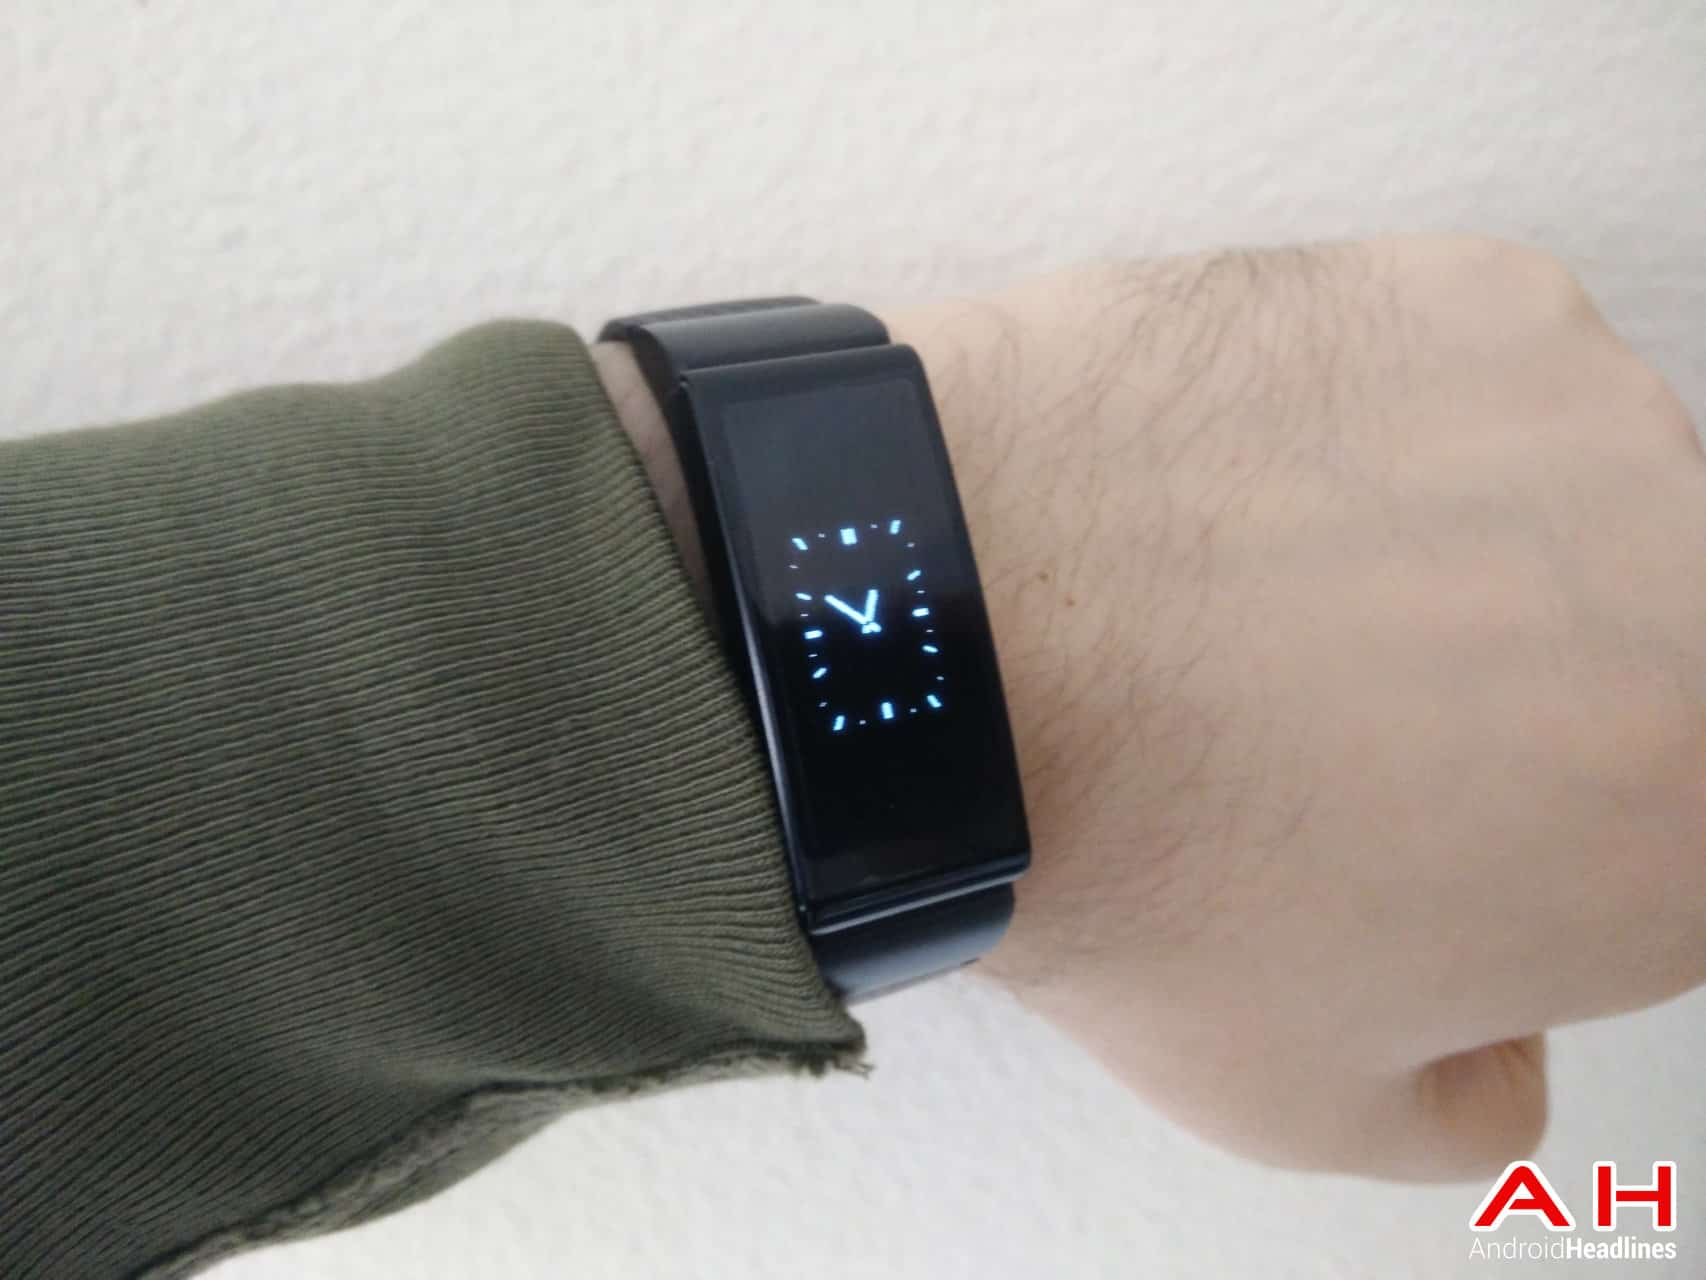 huawei talkband b2. it also lastly worth pointing out that on the software front, huawei have teamed up with jawbone and as such, device can be used to highlight your stats talkband b2